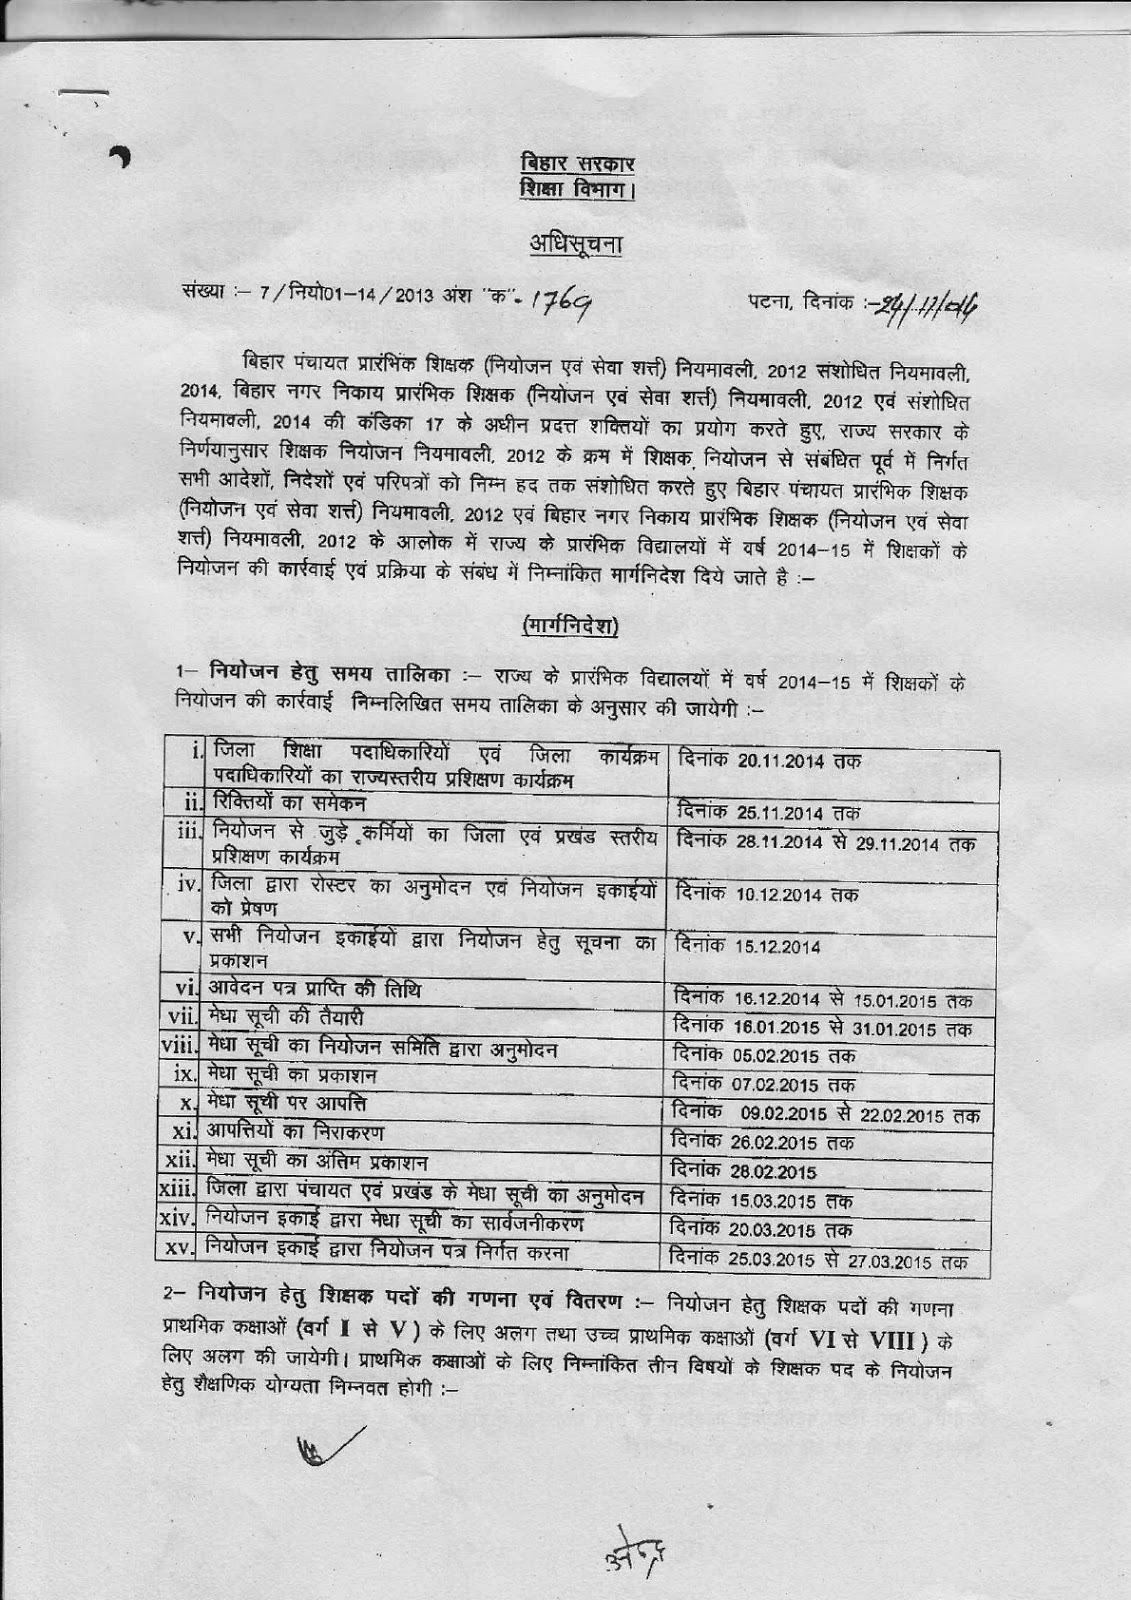 NOTIFICATION OF TEACHER NIYOJAN PRIMARY AND MIDDLE CLASS 1